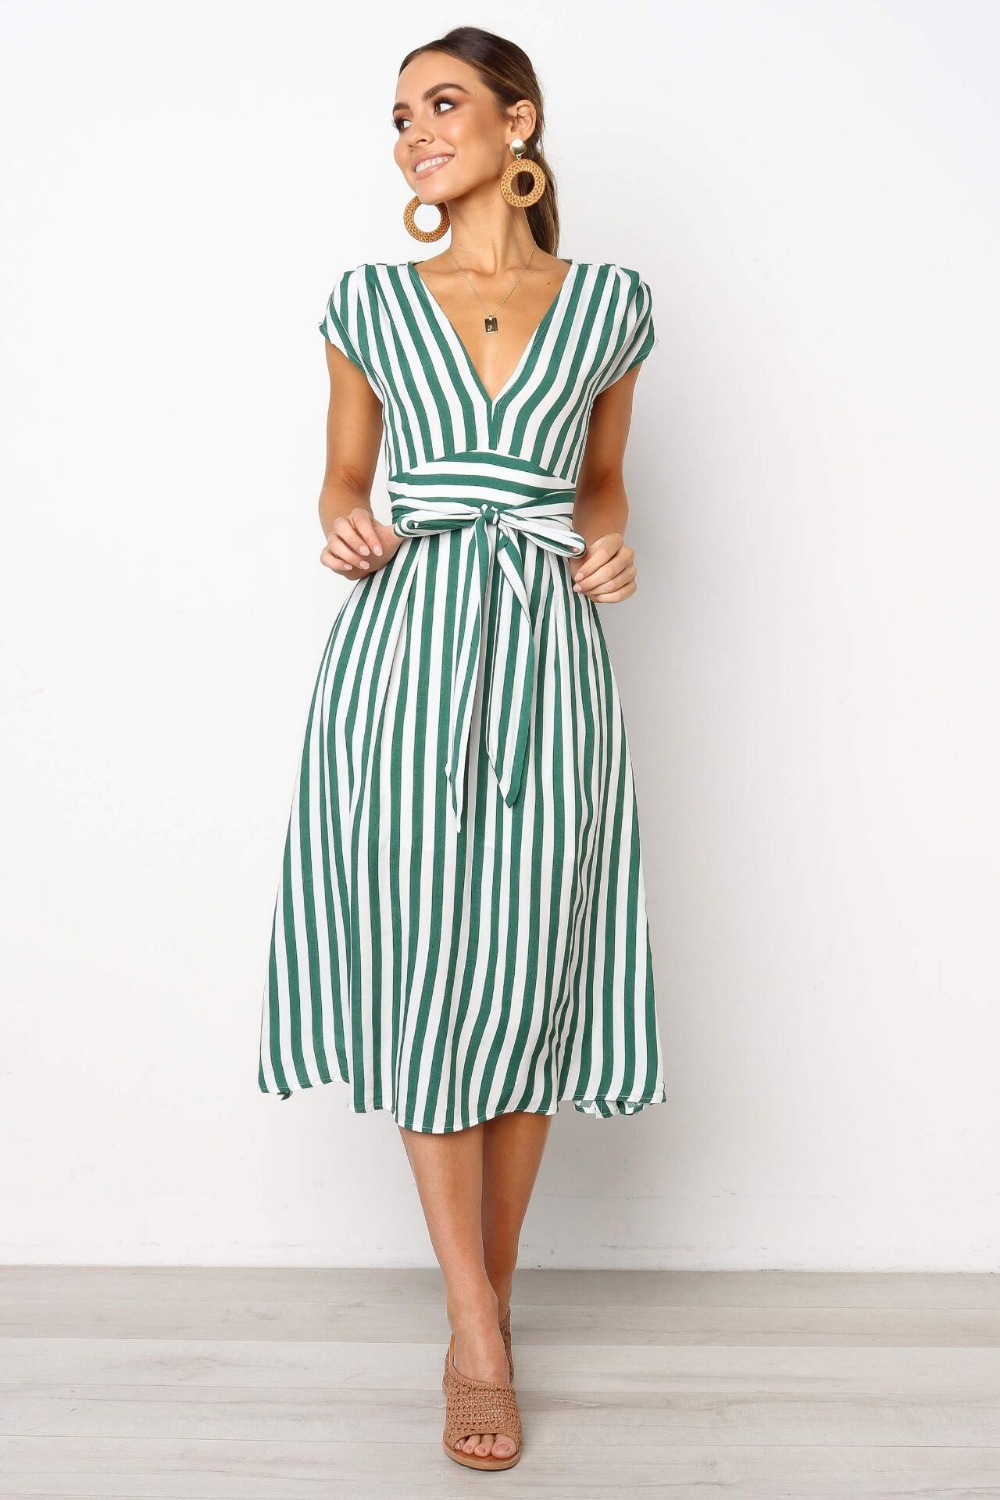 Bobasatop 2019 spring and summer new European and American V-neck belt slim striped dress